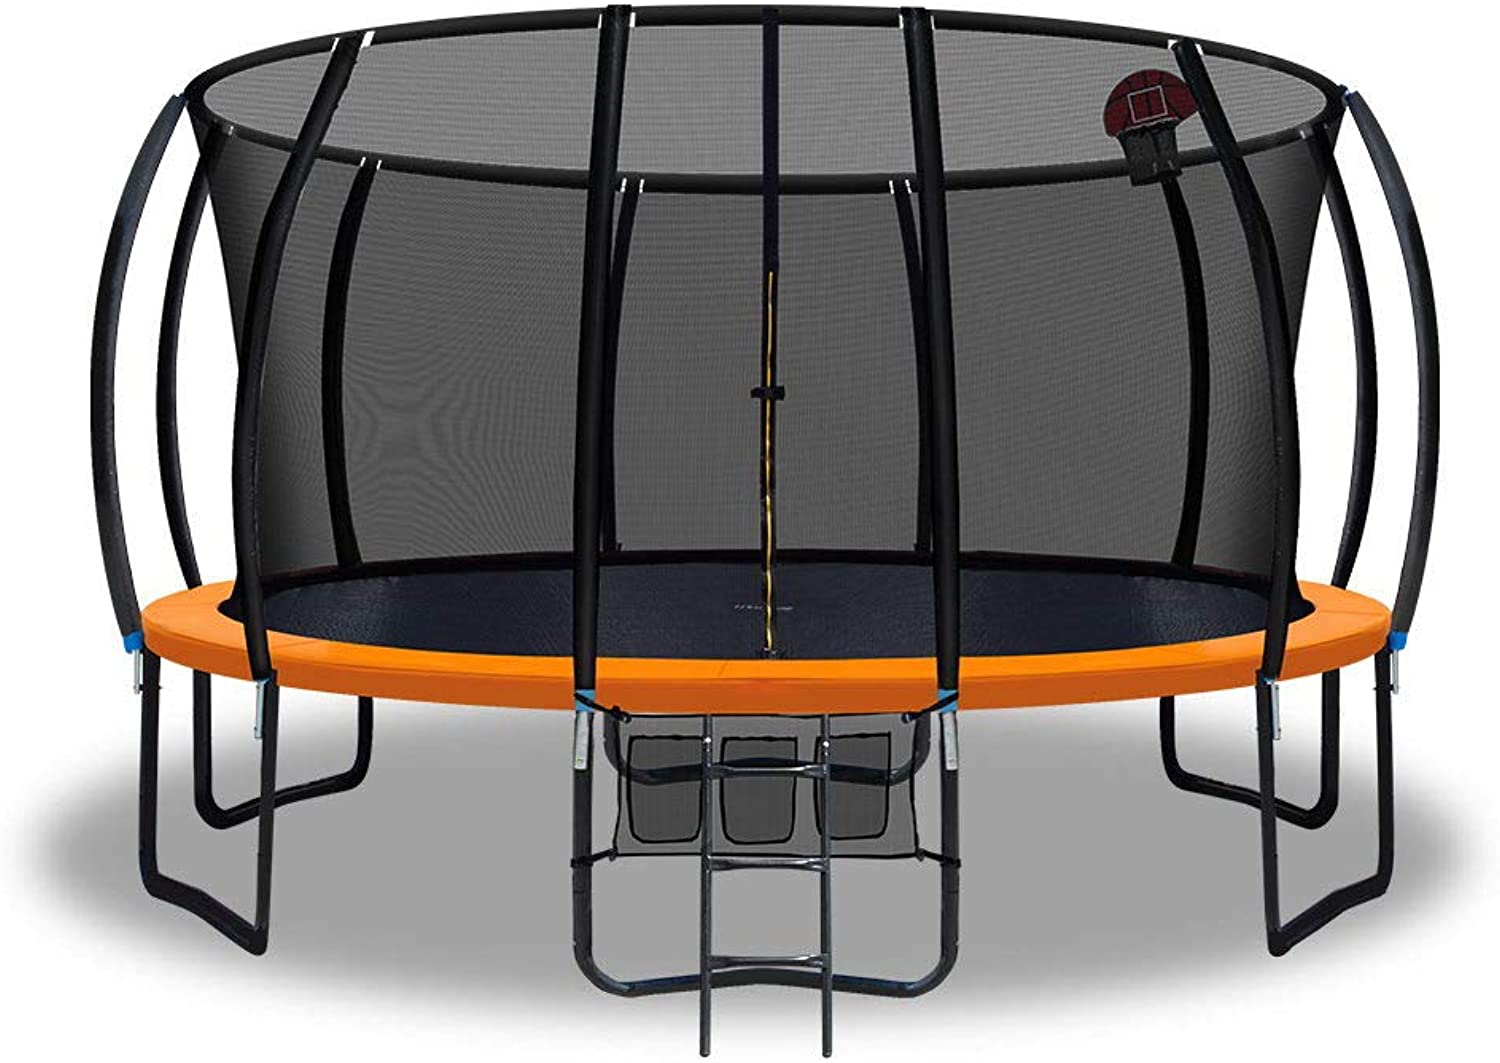 Trampoline 16Feet with Safety Enclosure and Basketball Set orange – Everfit